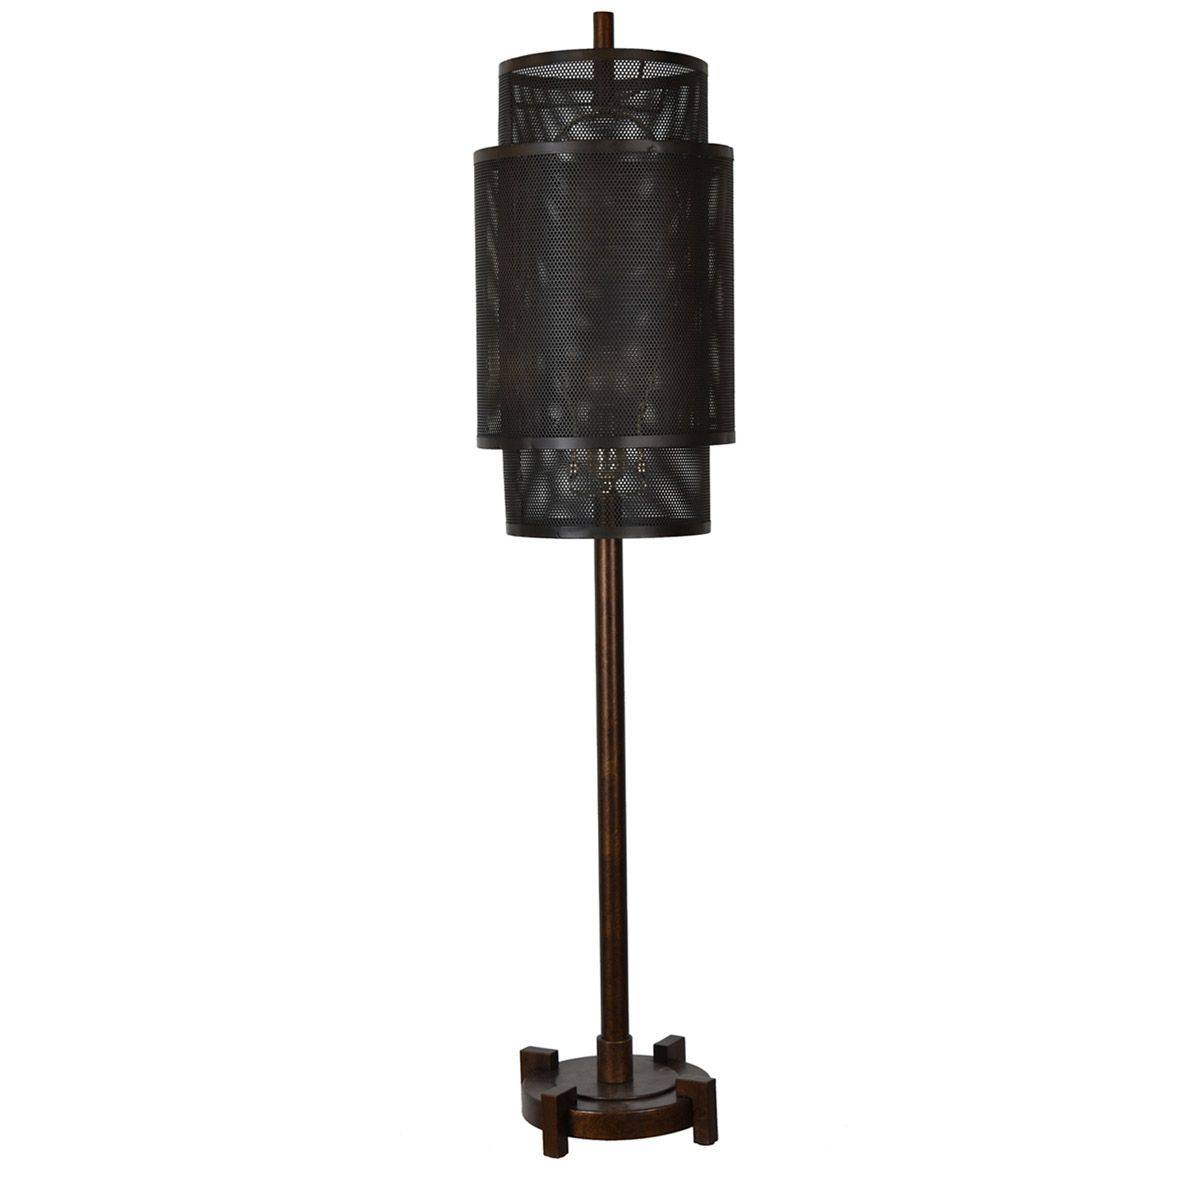 Tamarack Table Lamp